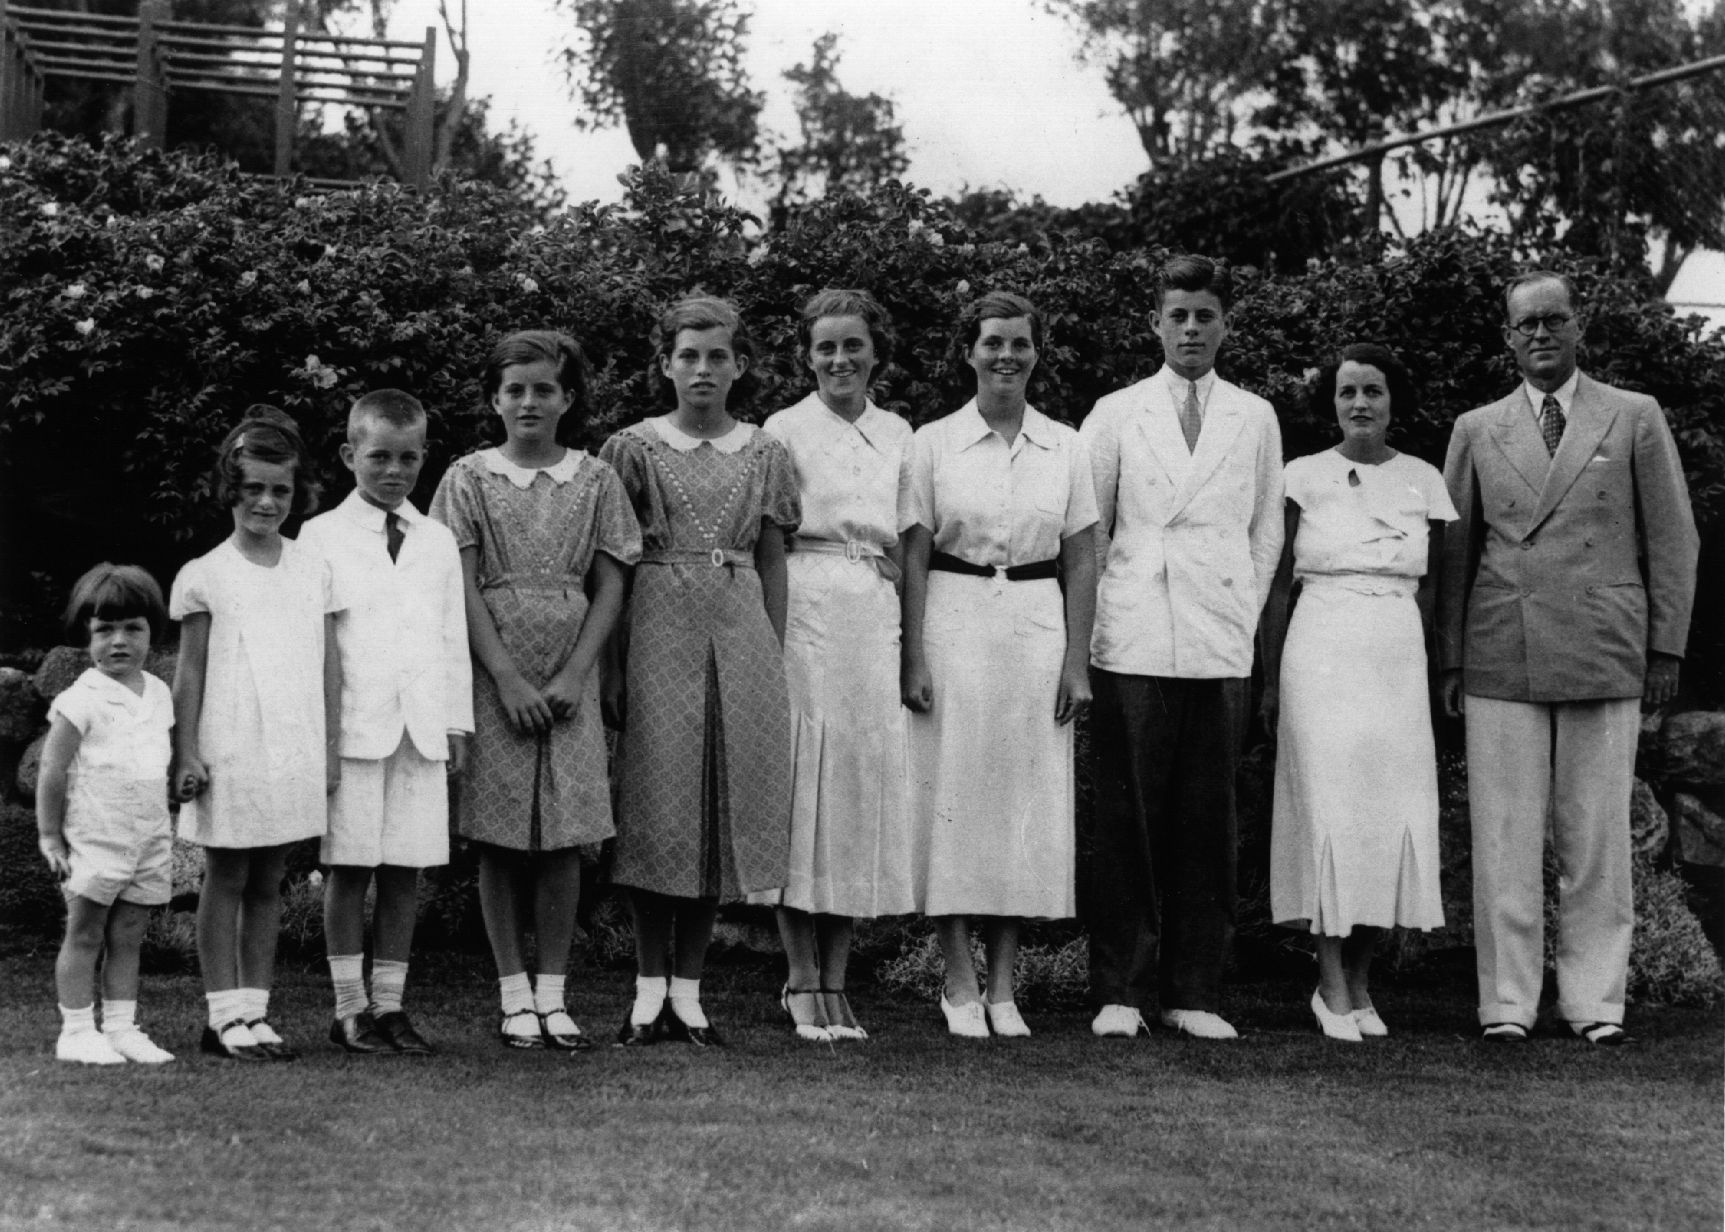 American multi-millionaire Joseph Patrick Kennedy (right), the newly-appointed ambassador to London, with his wife Rose Kennedy (second from right) and eight of their nine children, in London. From left: Edward, Jeanne, Robert, Patricia (1924 - 2006), Eunice, Kathleen, Rosemary and John F Kennedy